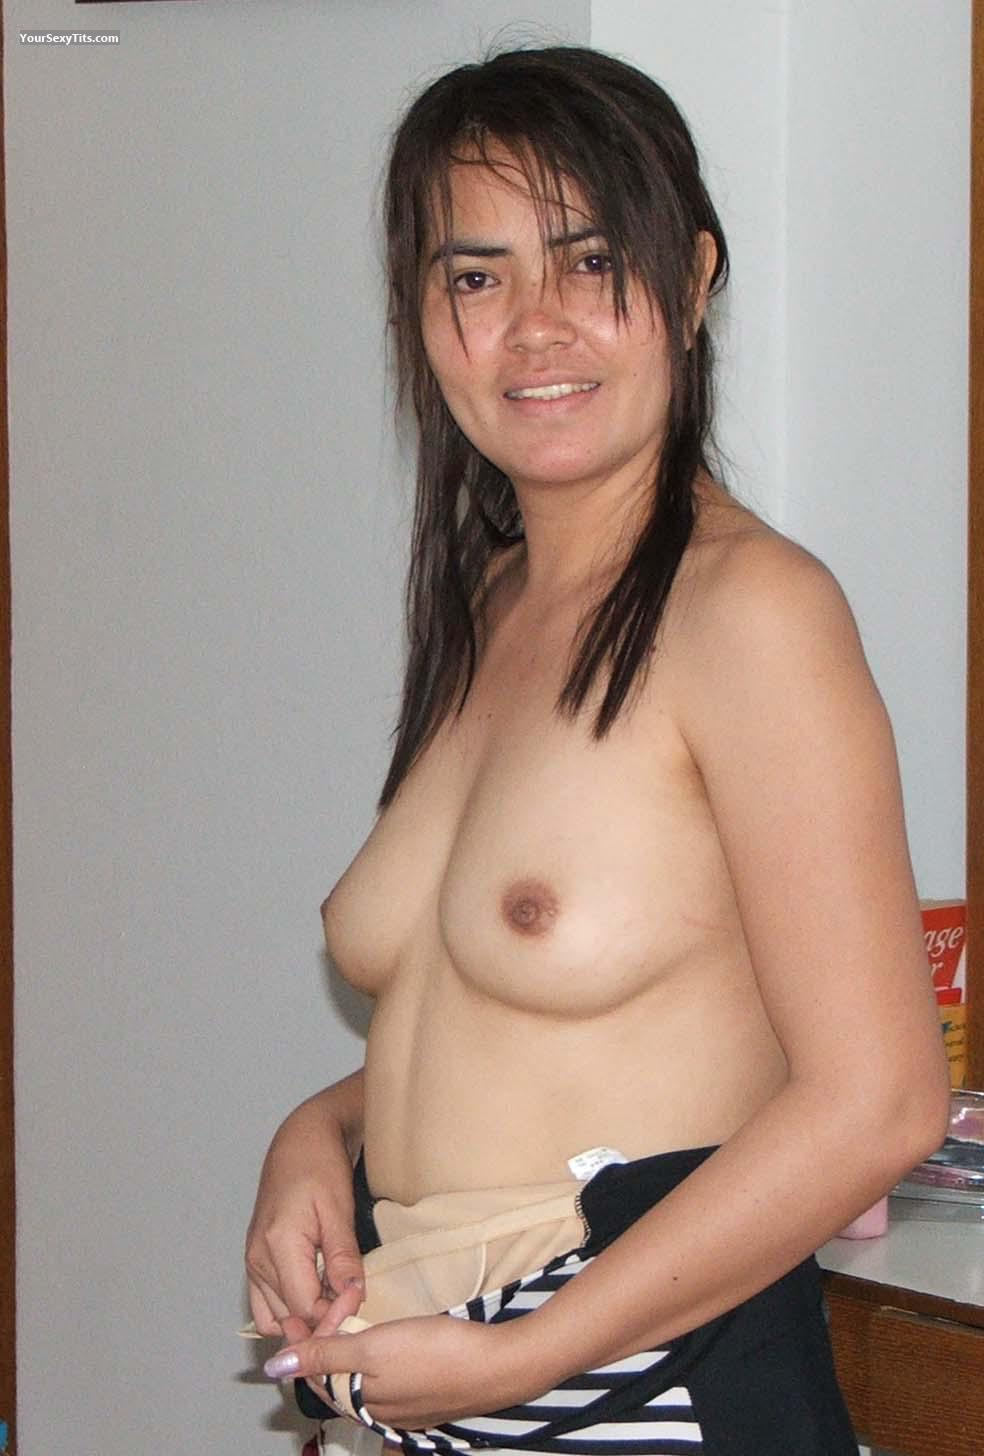 Medium Tits Topless Annie Chen